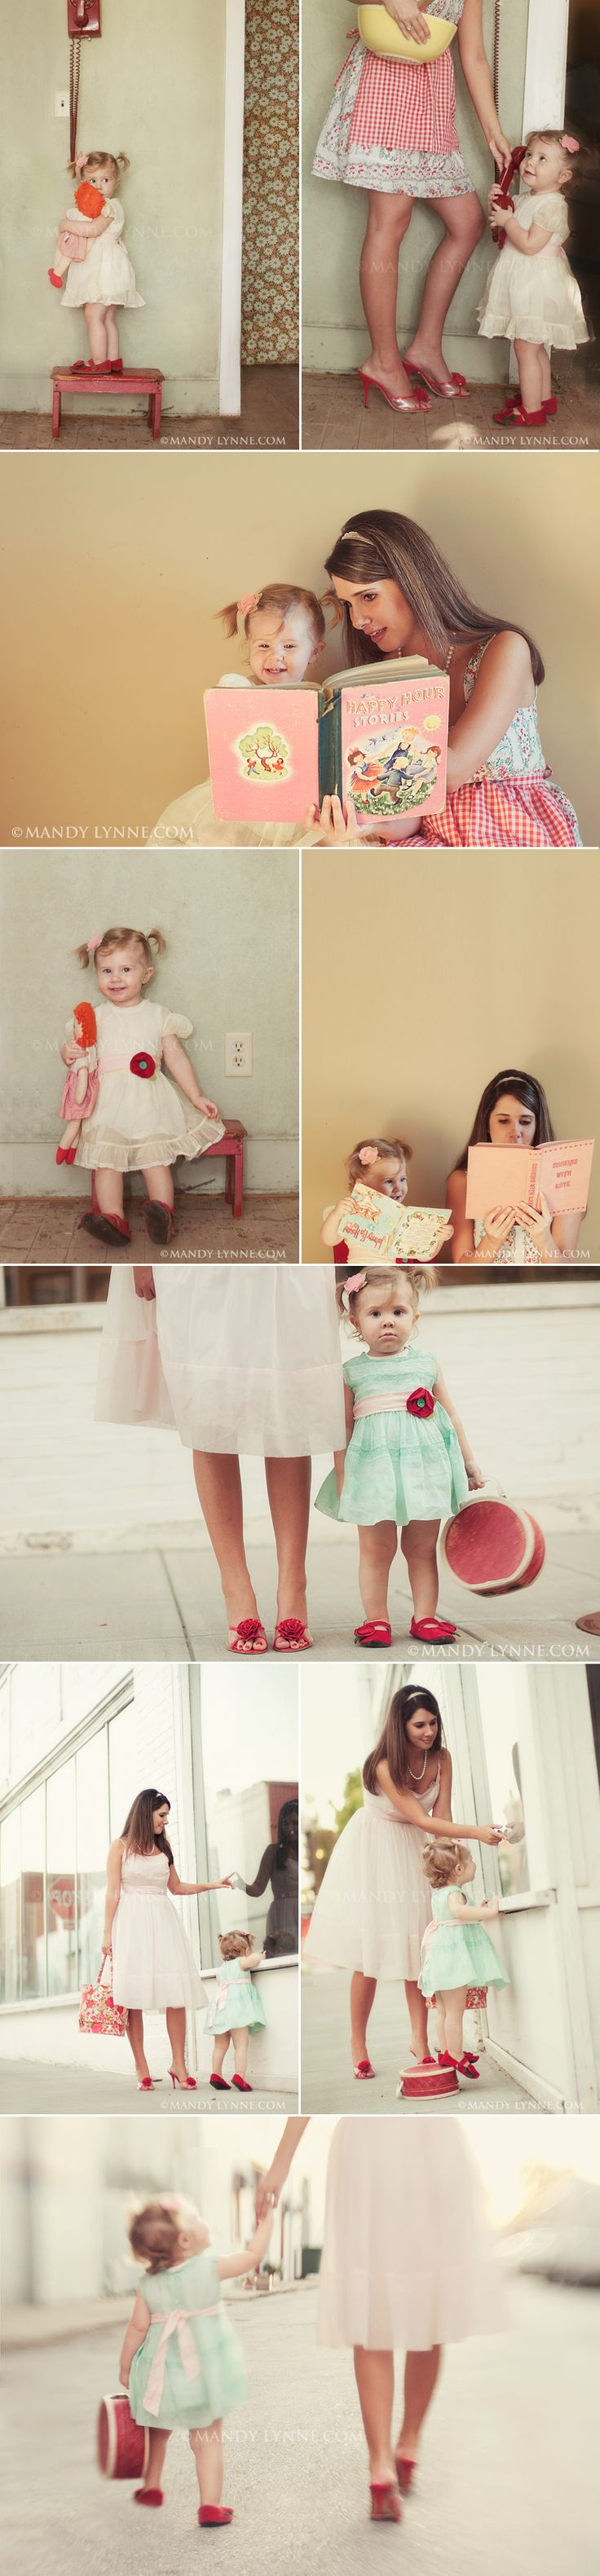 love the different levels, where you can see the womens legs and the completly see the little girl. cute ! mom & daughter